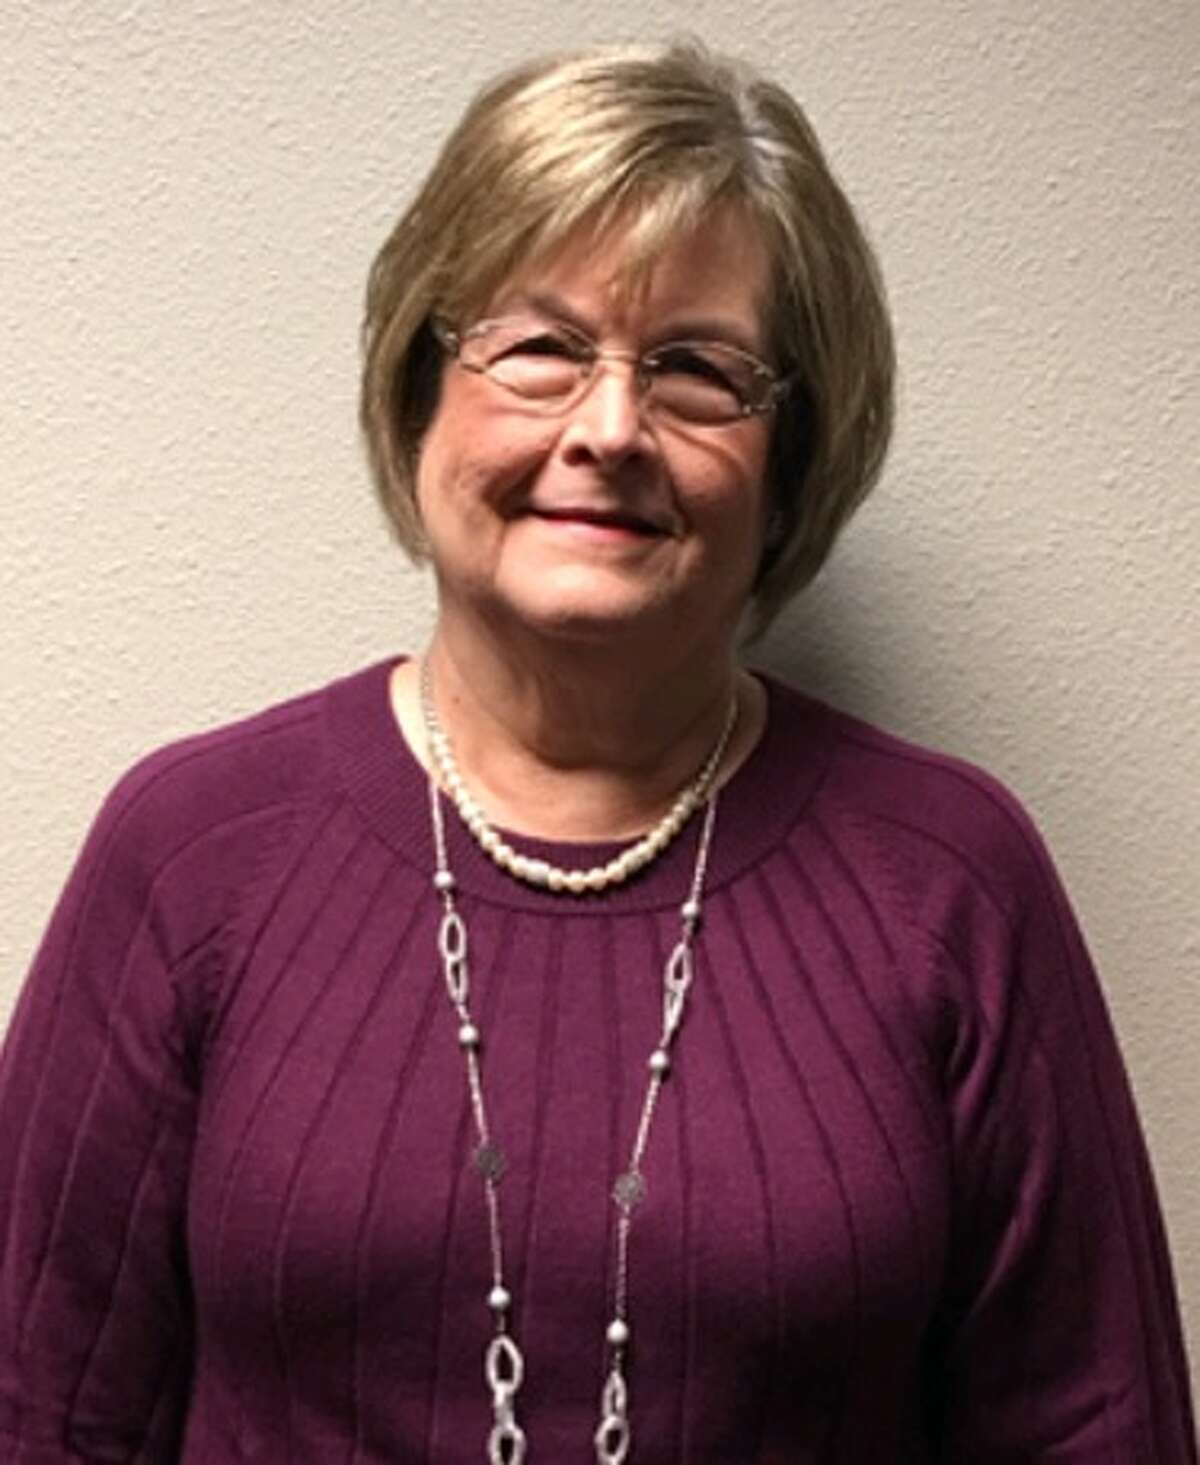 Linda Harris is one of five new recipients of the Distinguished Sam Houston State Educator of the Year Alumni Award. She is a former teacher, UIL sponsor and department chair for the district and has served as six years on the Dayton ISD Board of Trustees.